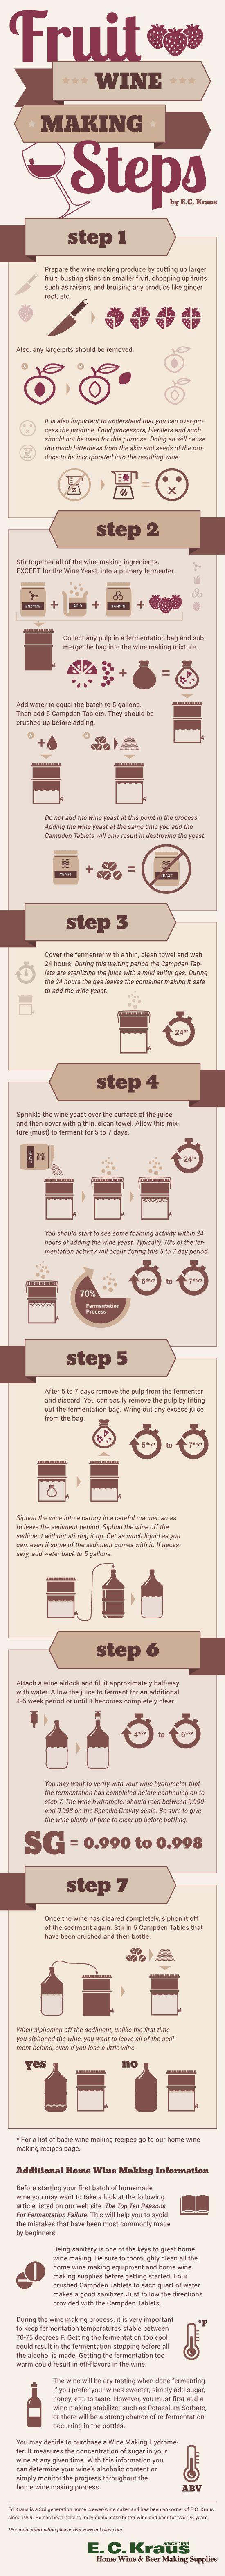 How To Make Homemade #Wine Infographic - click the image for more information on making your own wine!